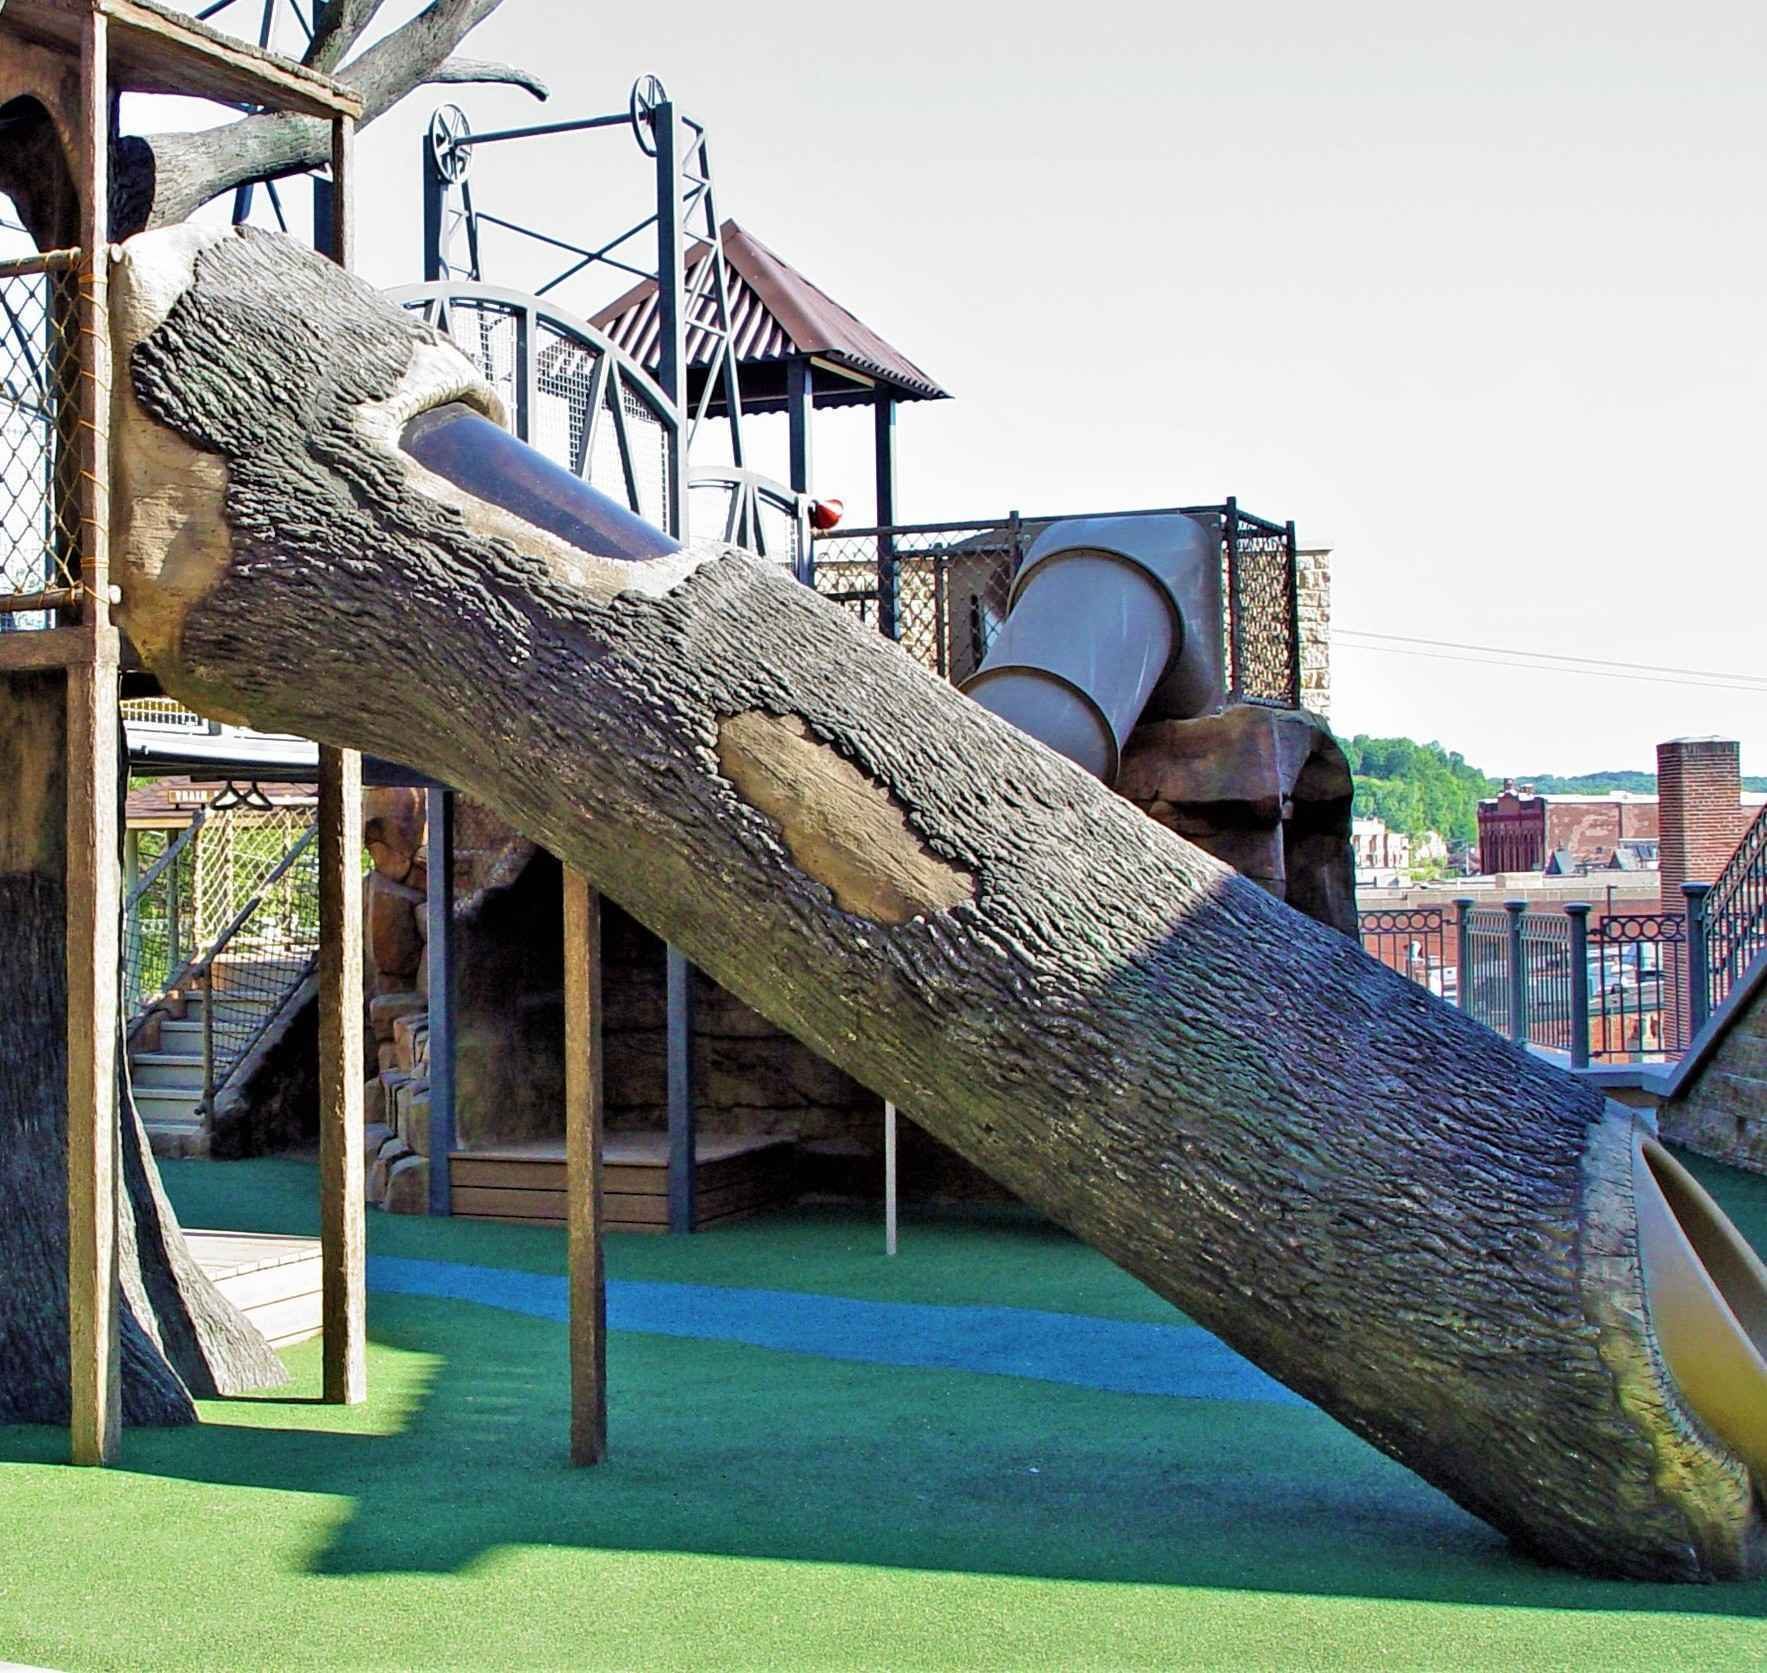 YOU can help us raise $3,000 in 30 days for the Children's Canopy Walk Log Slide! image